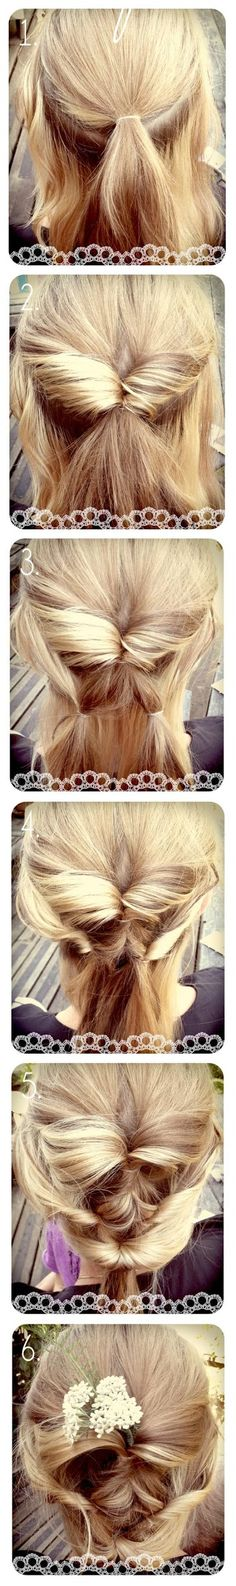 Make a Diy Wedding Hair | hairstyles tutorial, easy to do <3